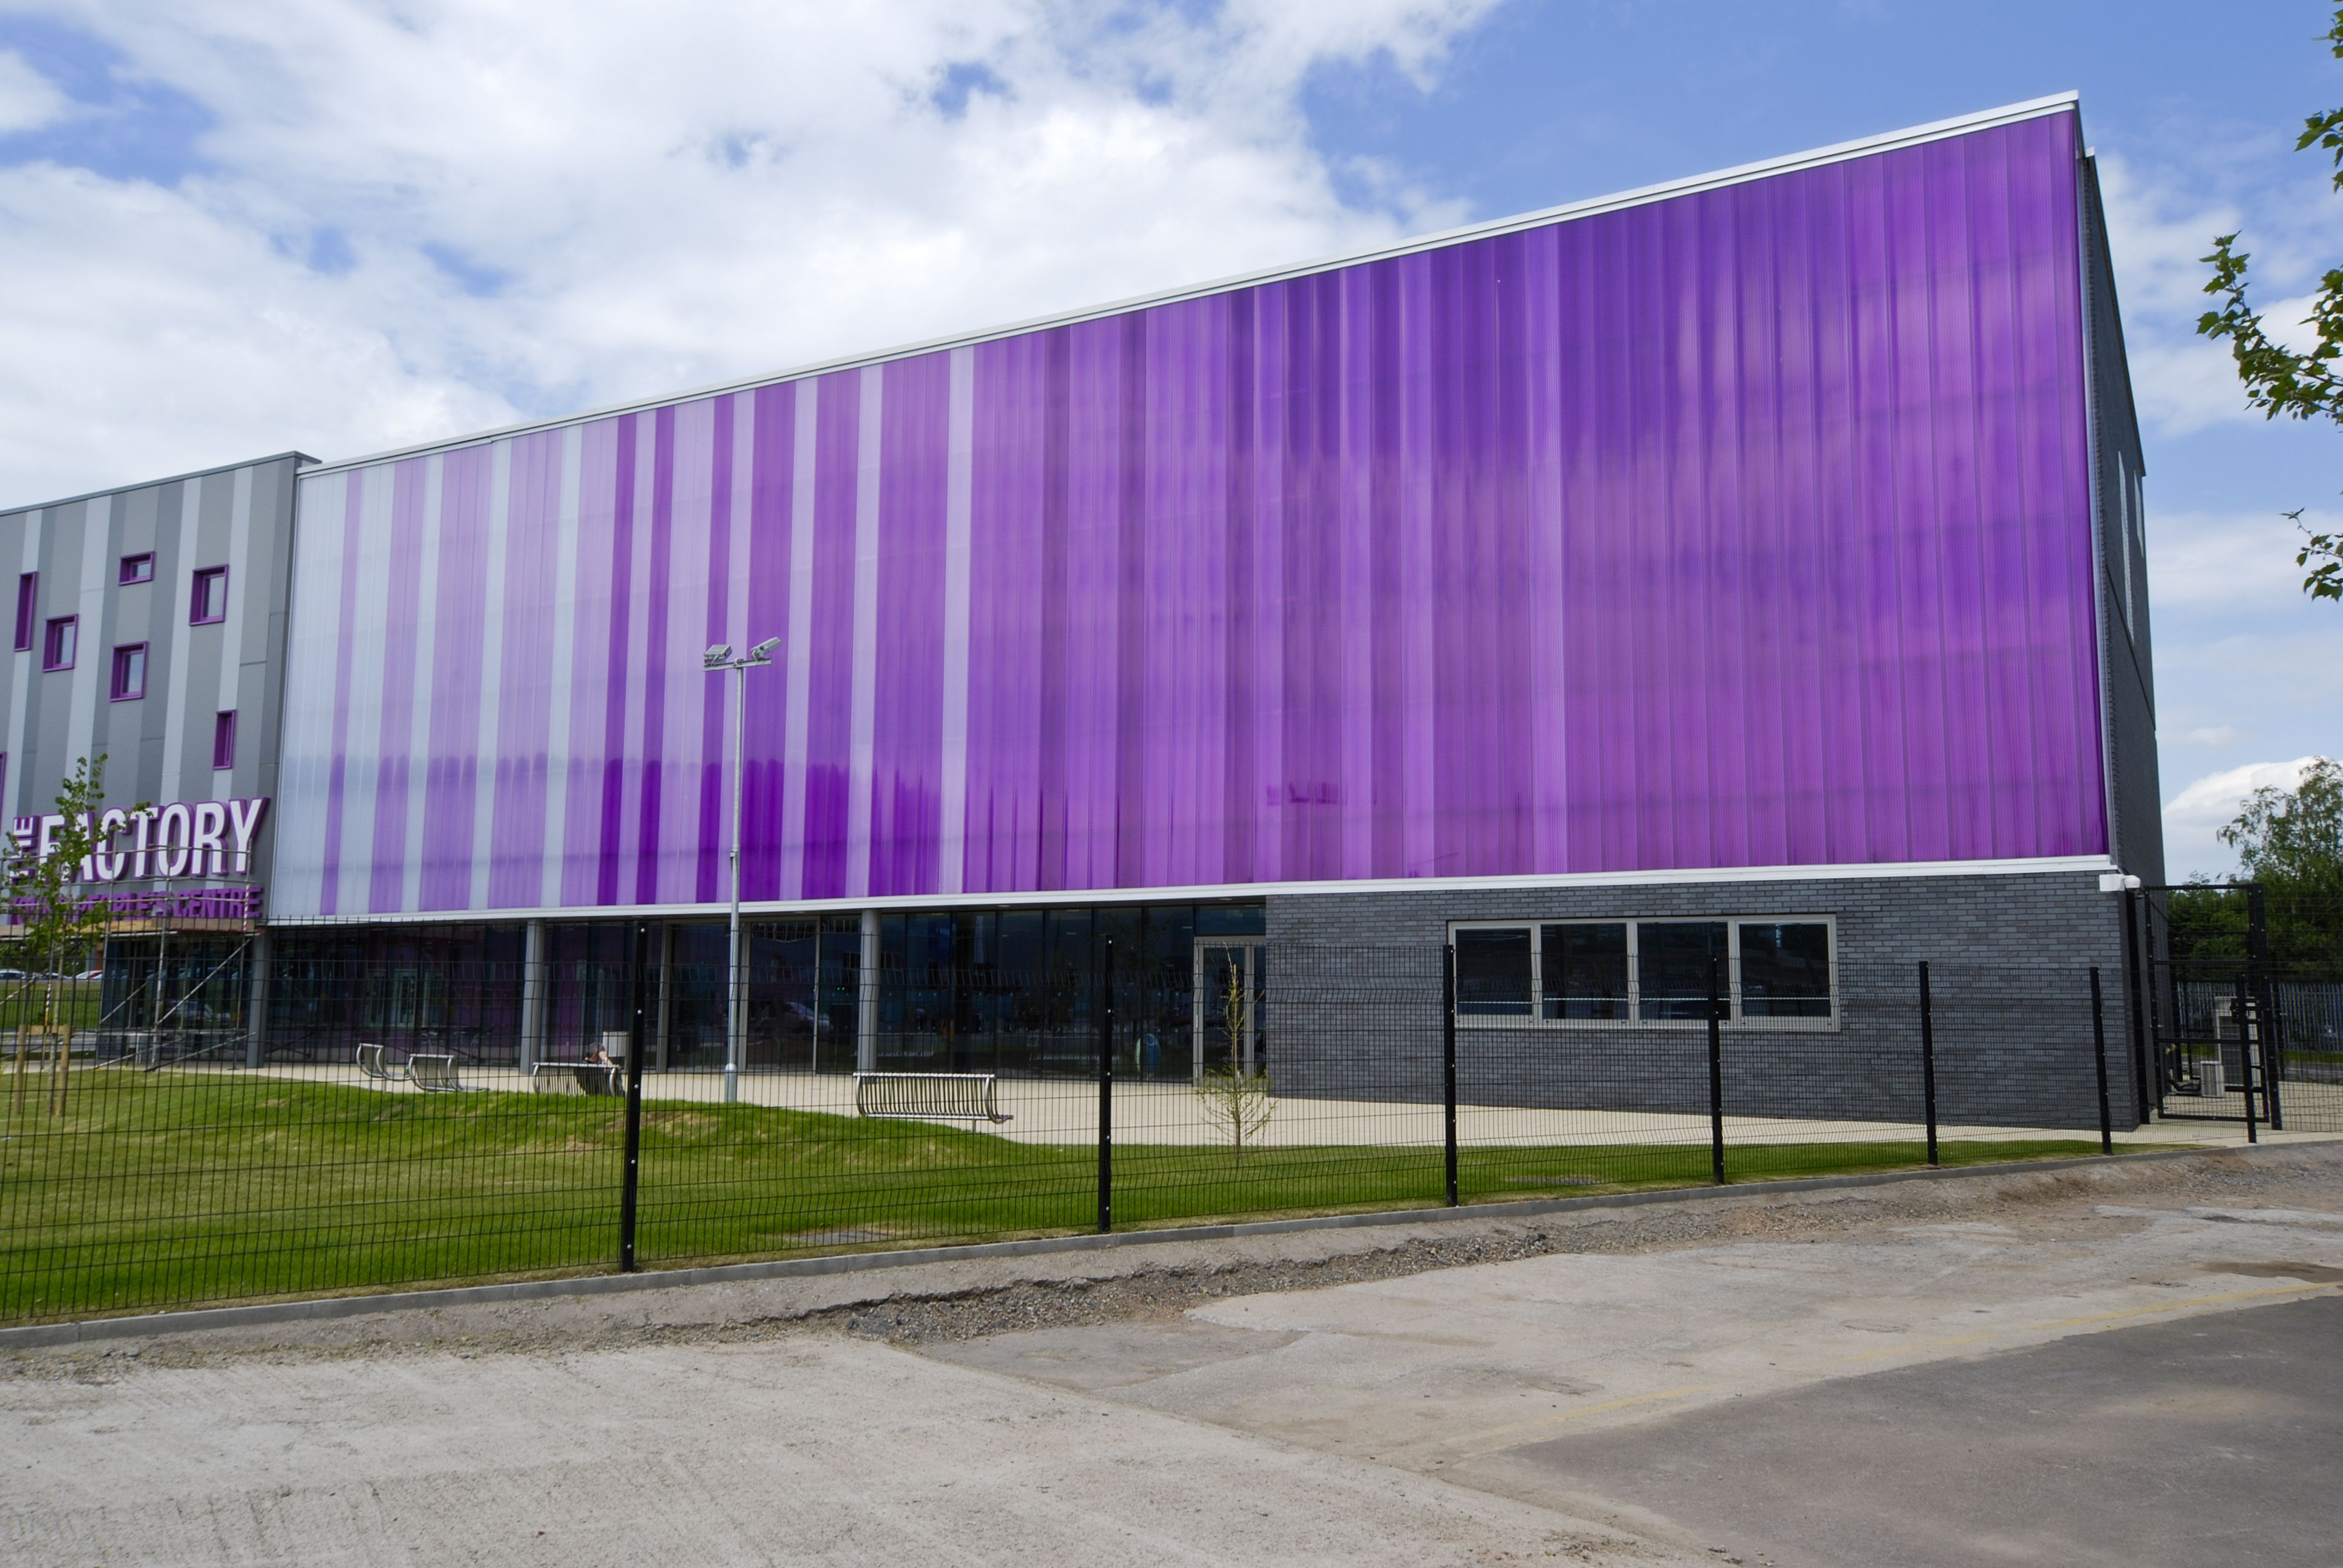 Architectural Translucent Panels : Translucent facade in polycarbonate panels by rodeca gmbh